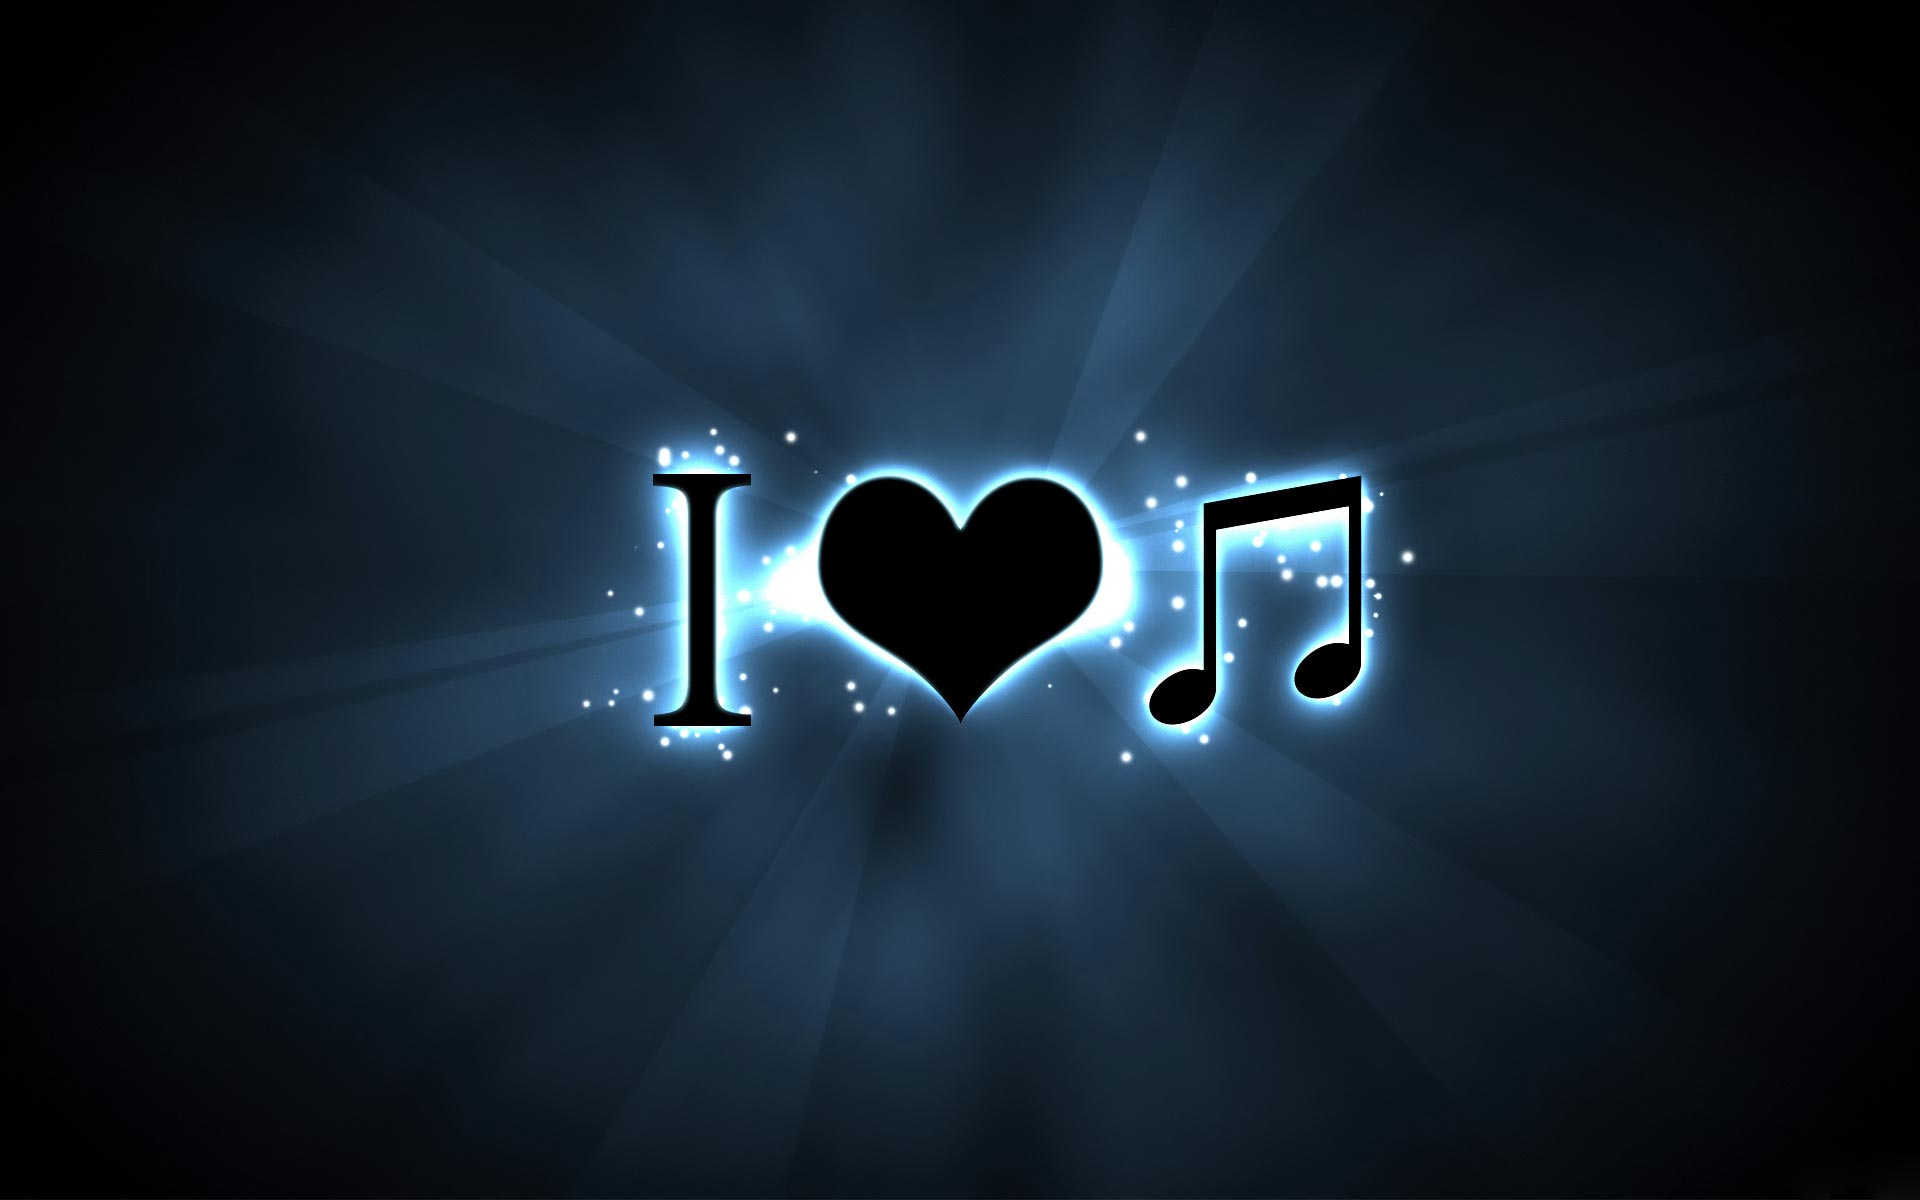 Awesome Music Wallpaper - WallpaperSafari